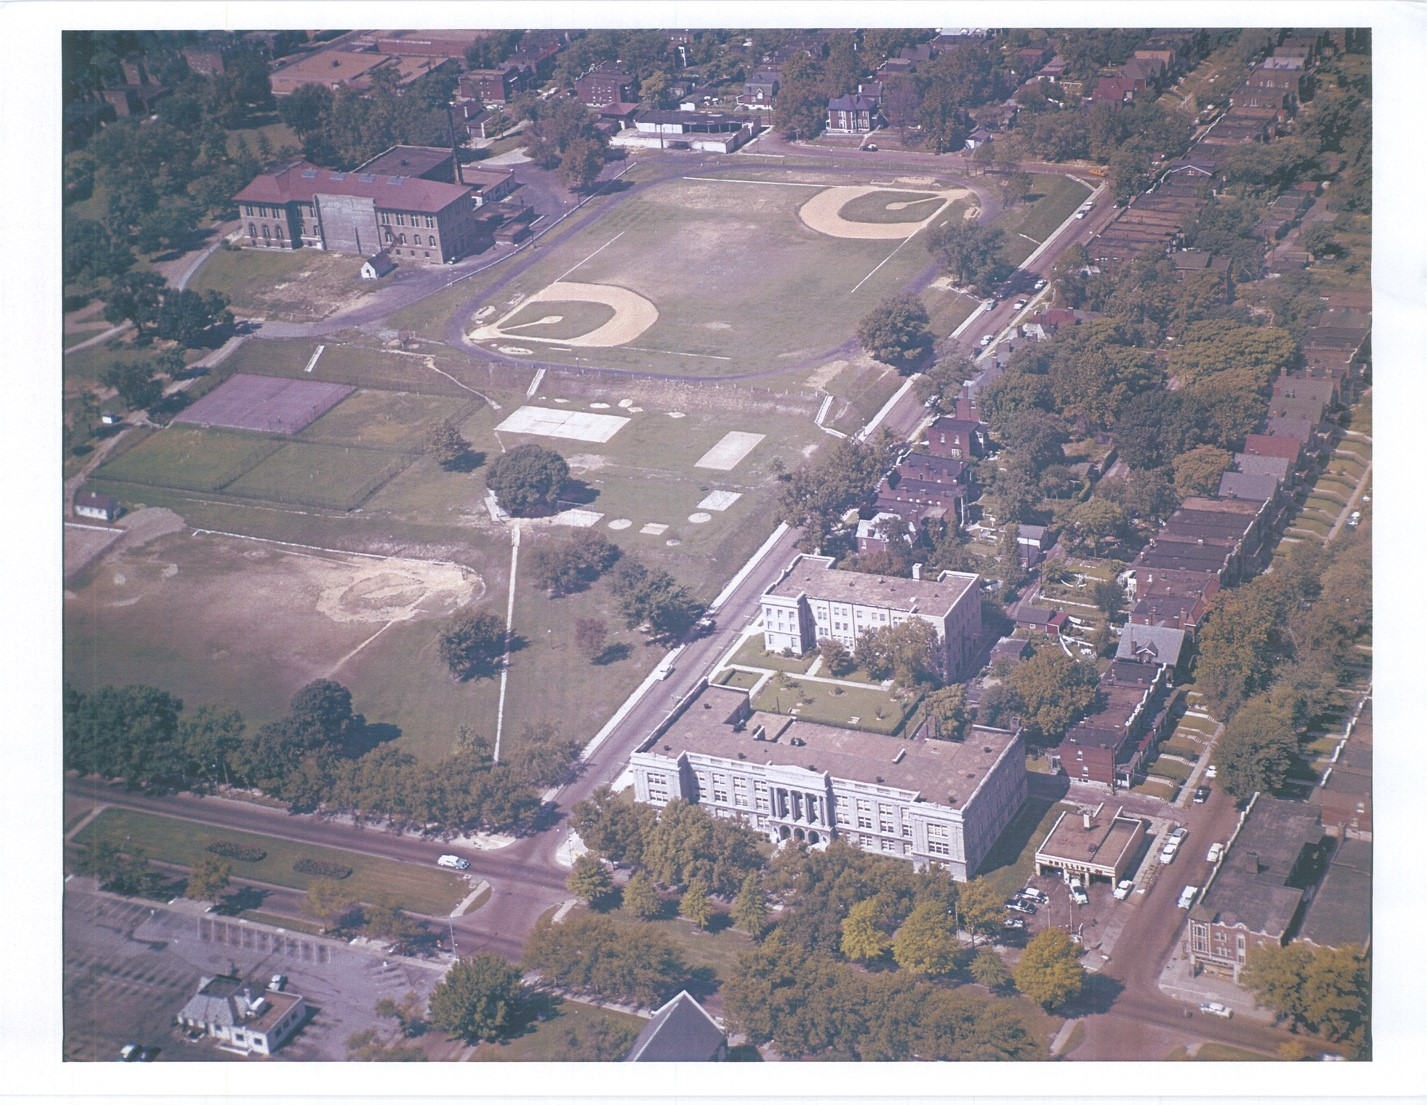 Aerial photo of McBride High School from the 1960s